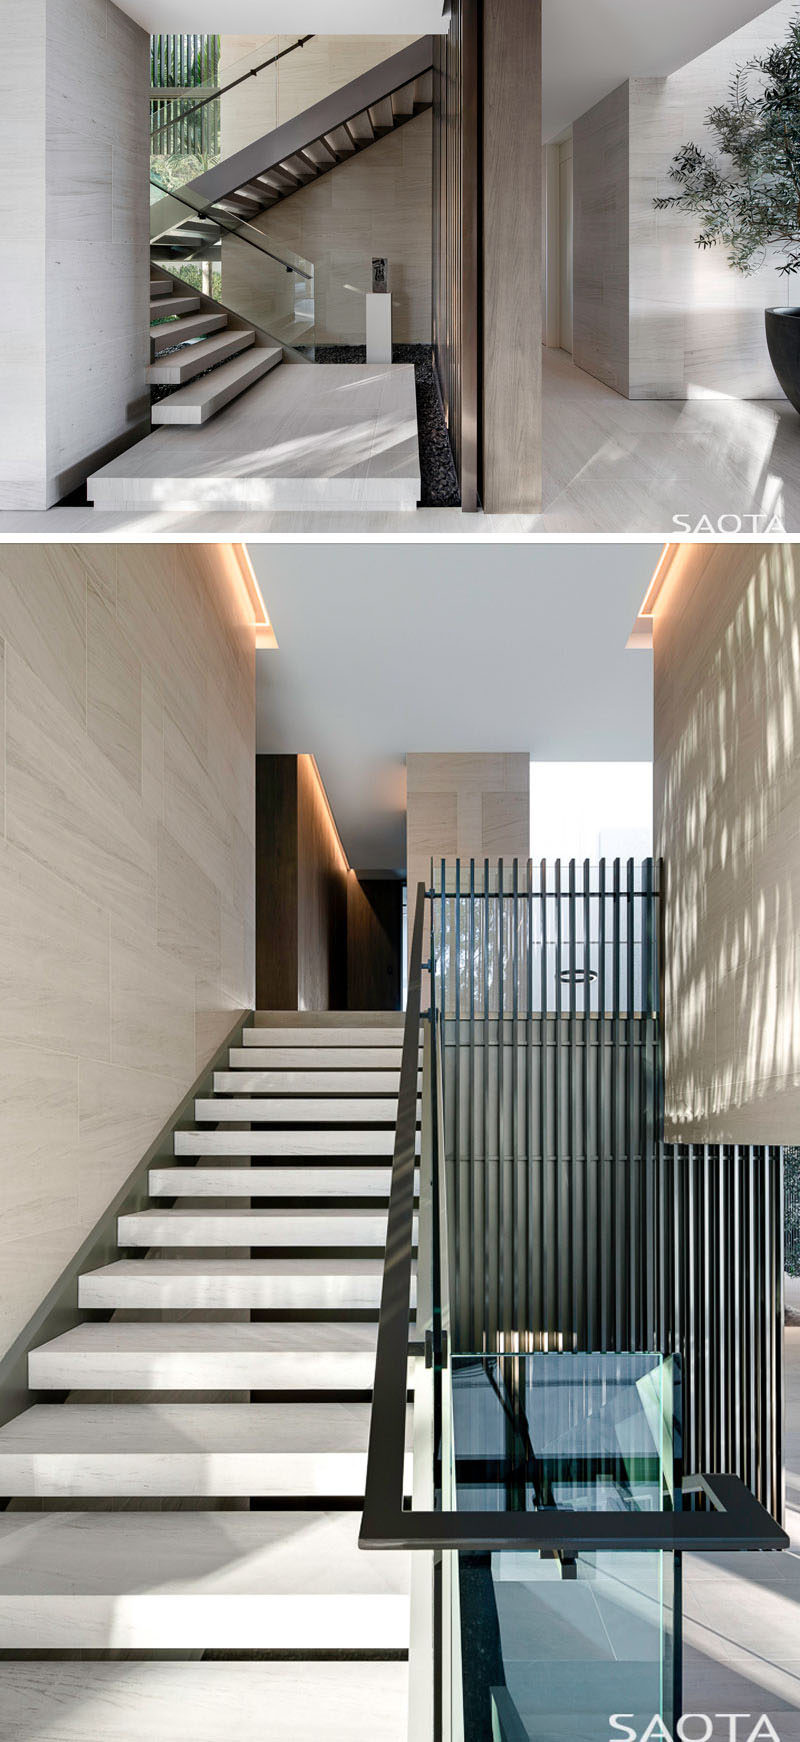 These modern stairs with glass safety screens and steel handrails lead to the upper floor of this house. #Stairs #Staircase #ModernStairs